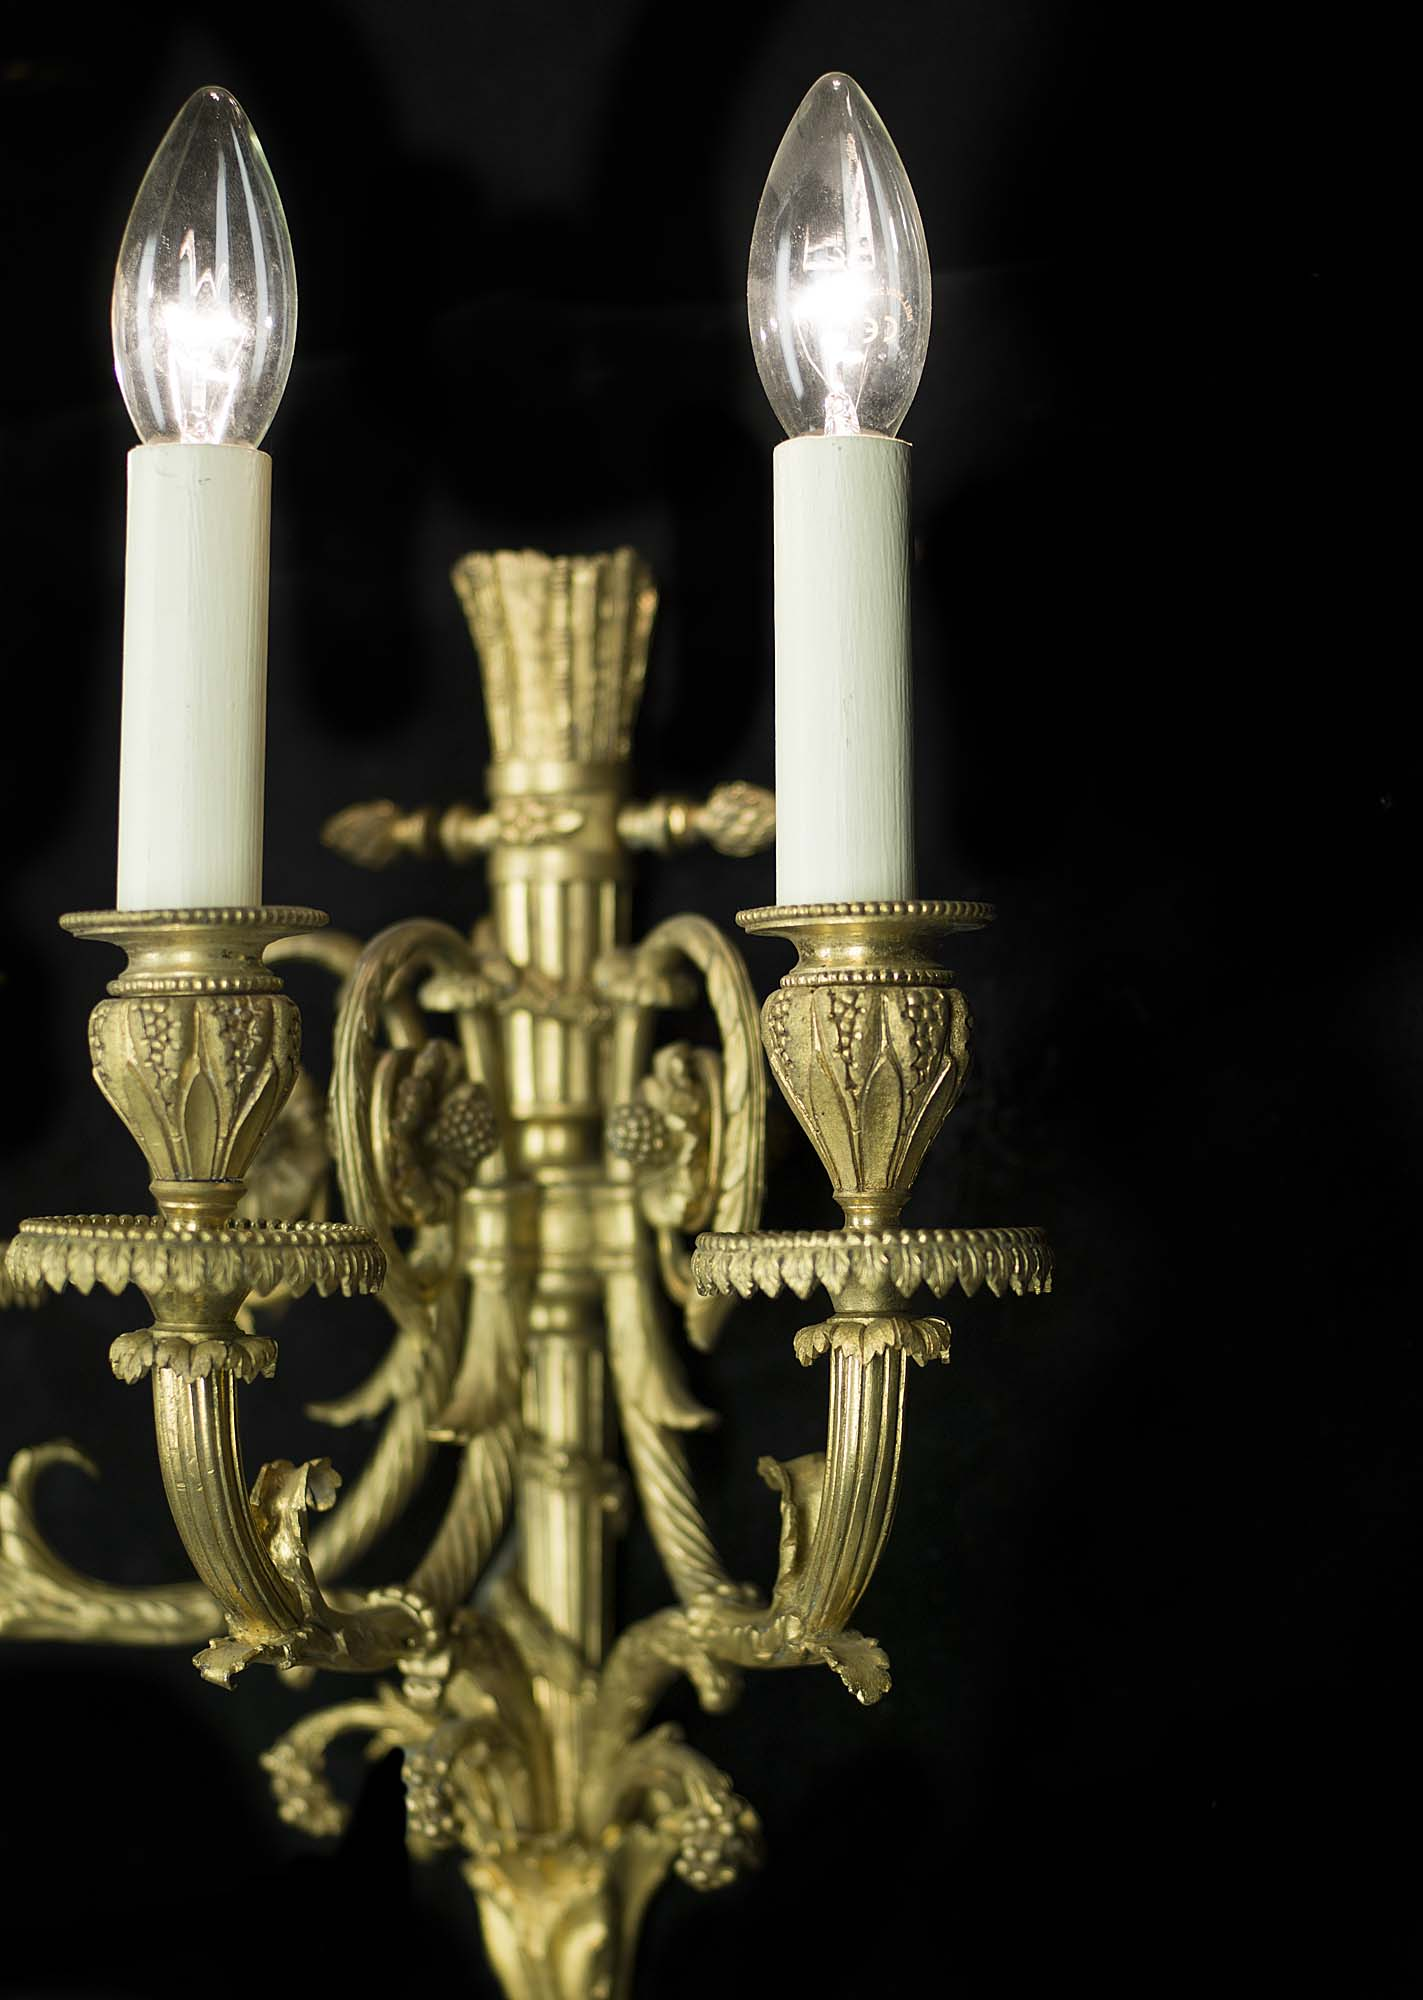 A 20th century pair of brass Neoclassical style wall lights